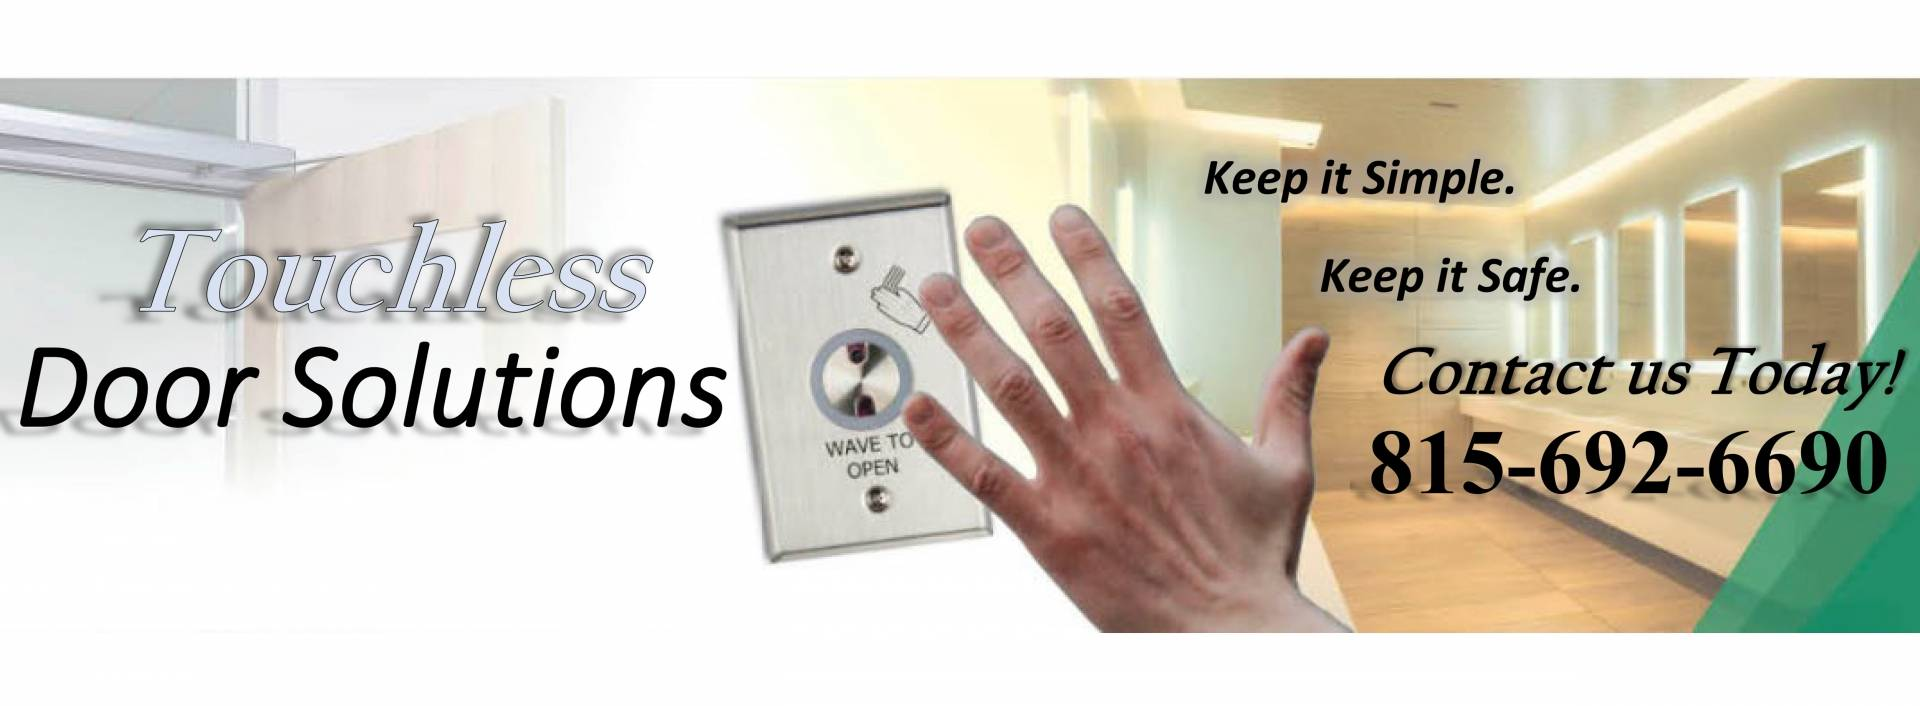 Touchless Door Solutions